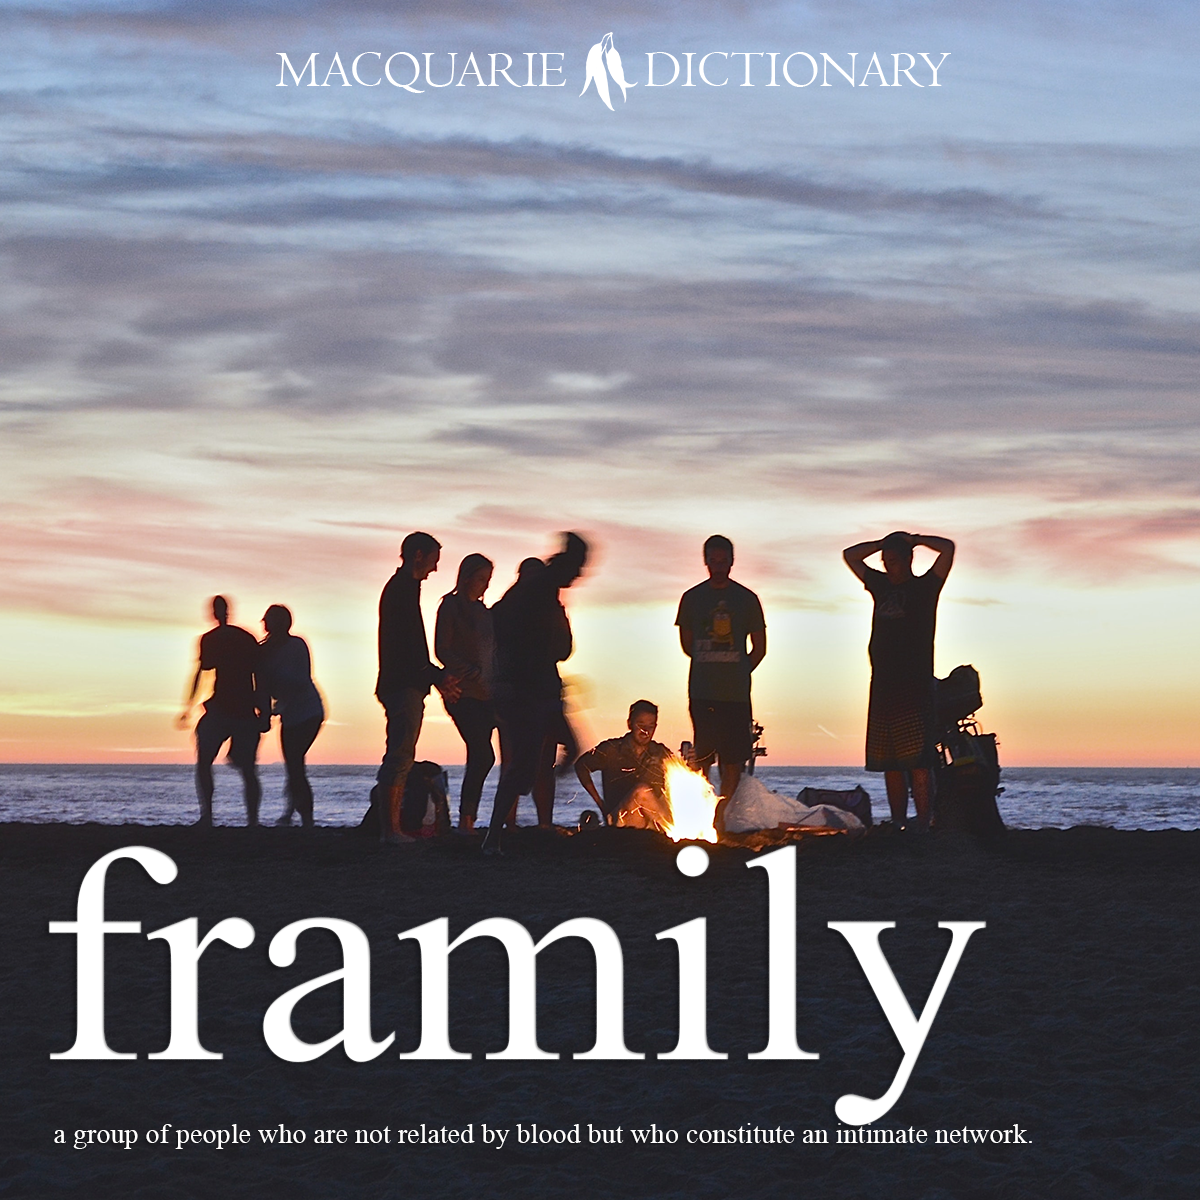 framily - a group of people who are not related by blood but who constitute an intimate network.